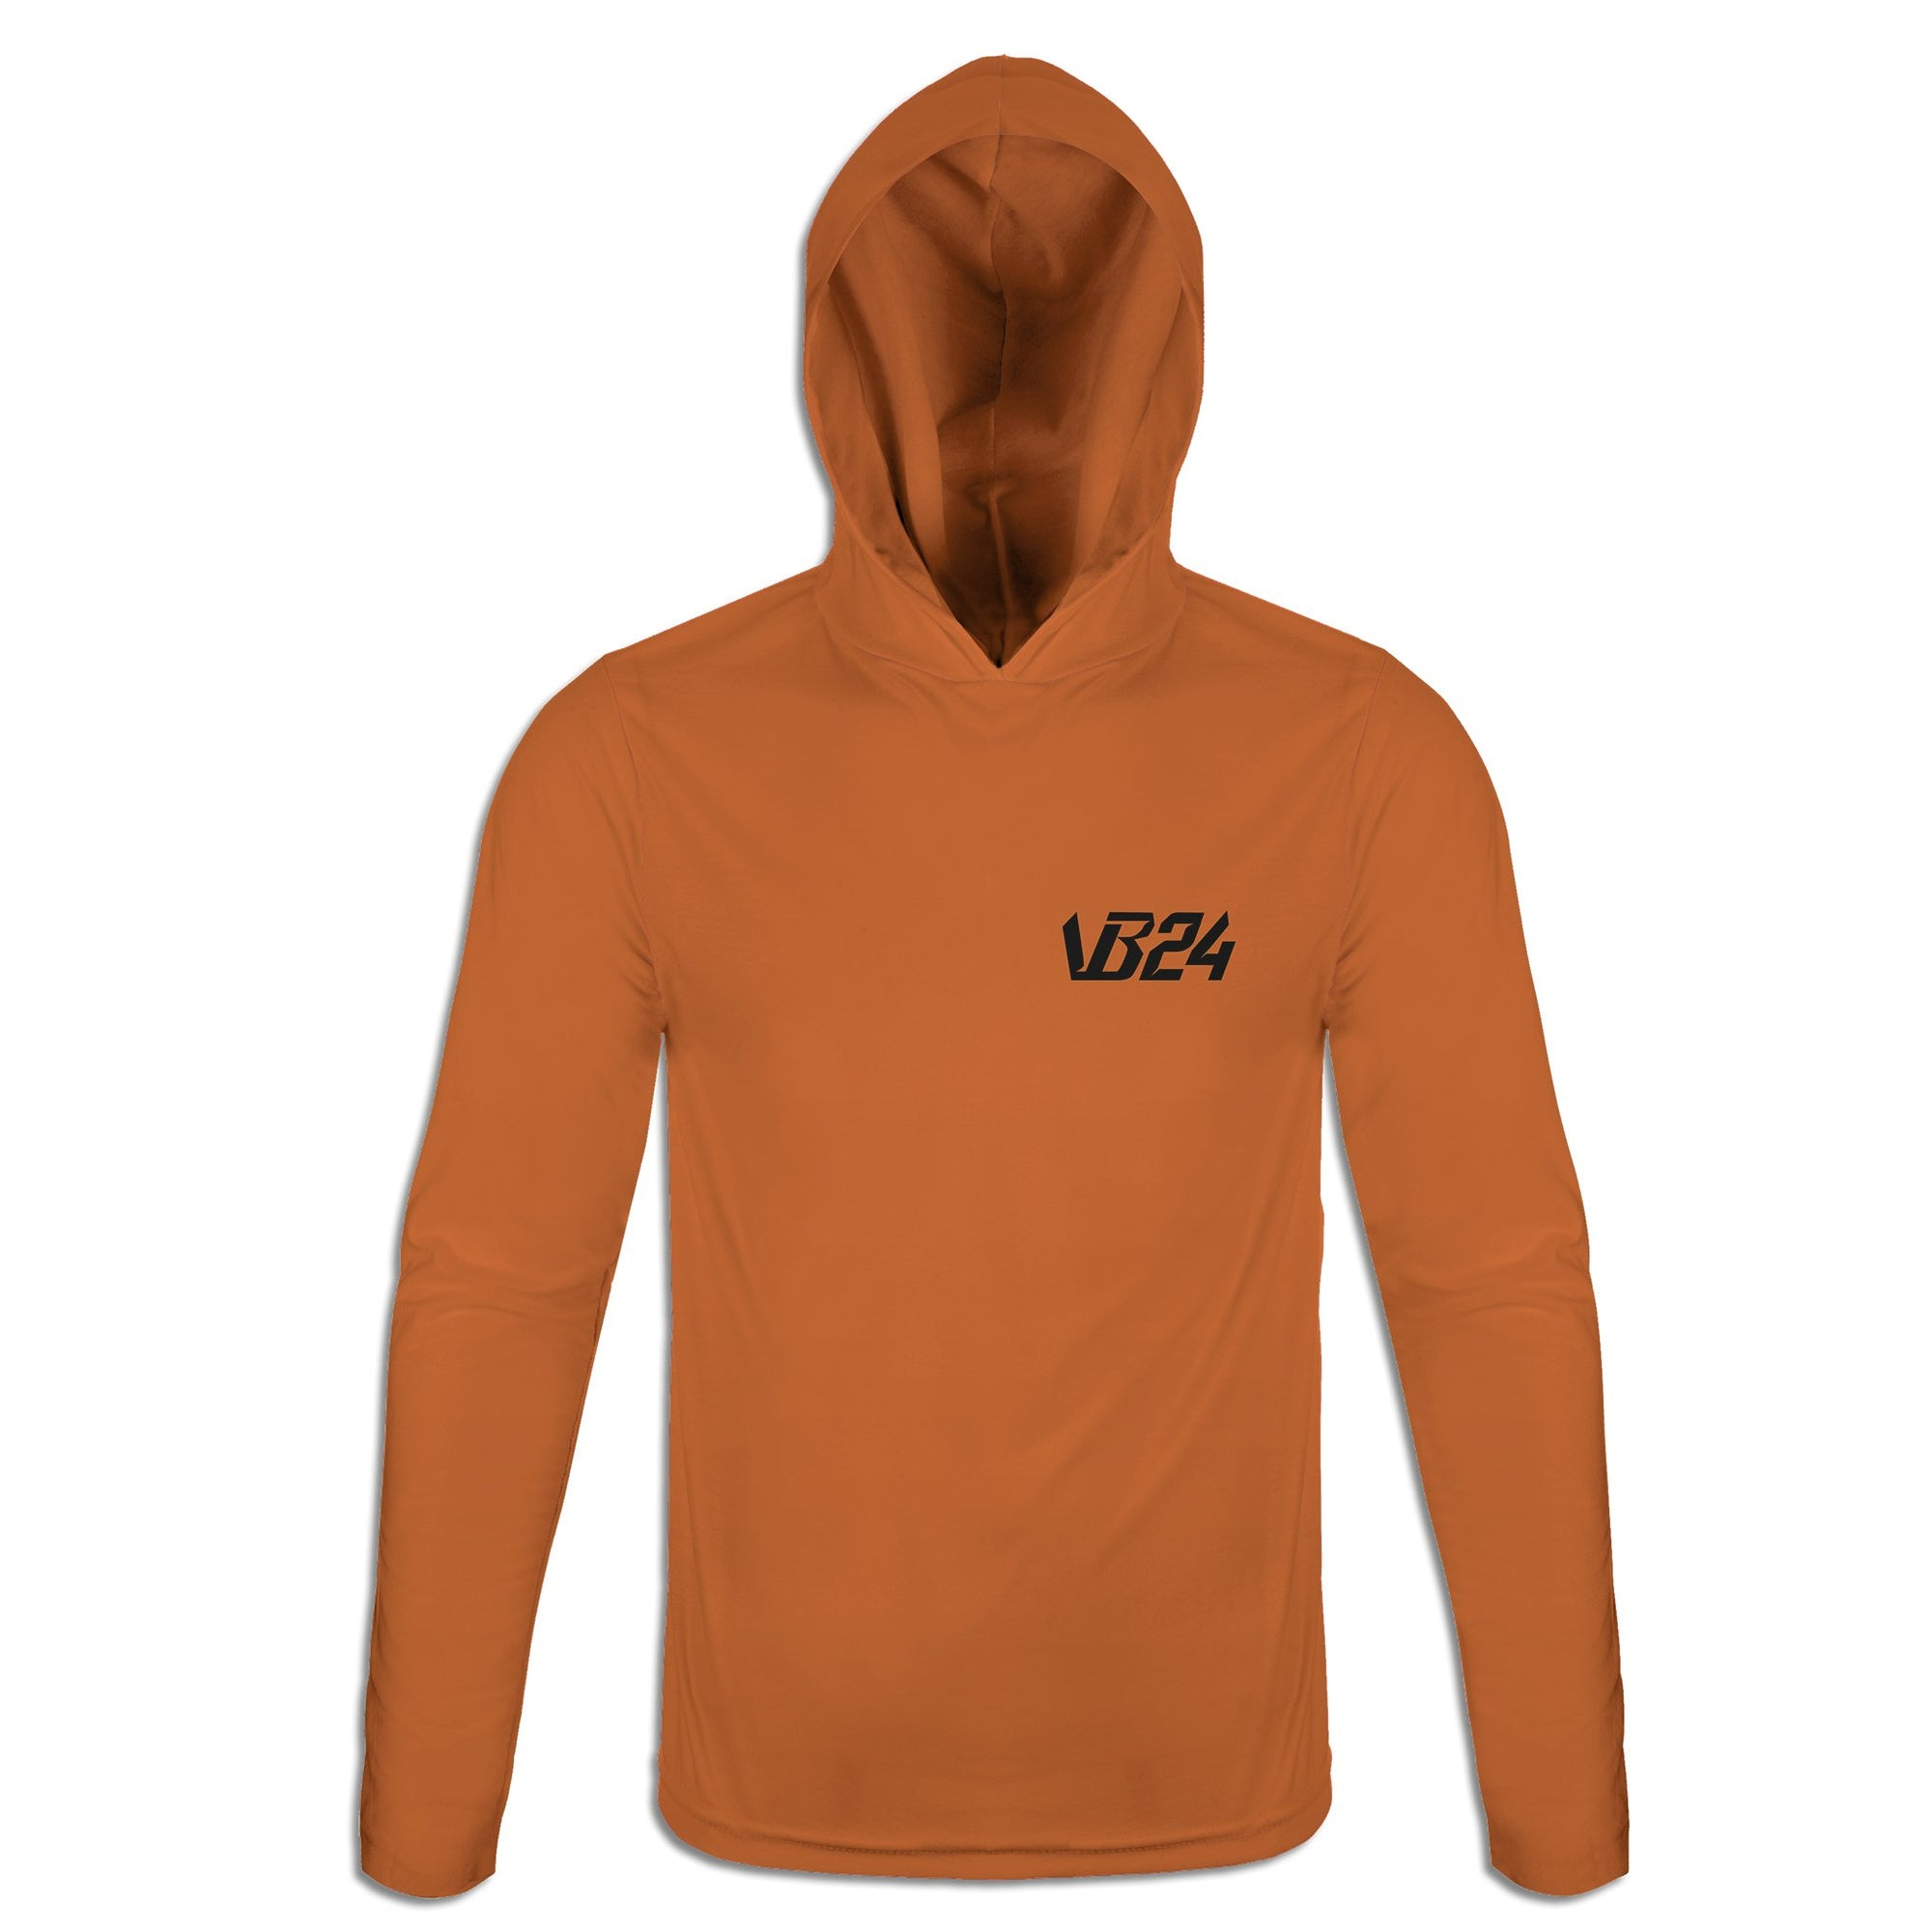 Twenty Four - Orange Lightweight Hoodie | vonbellshop.com